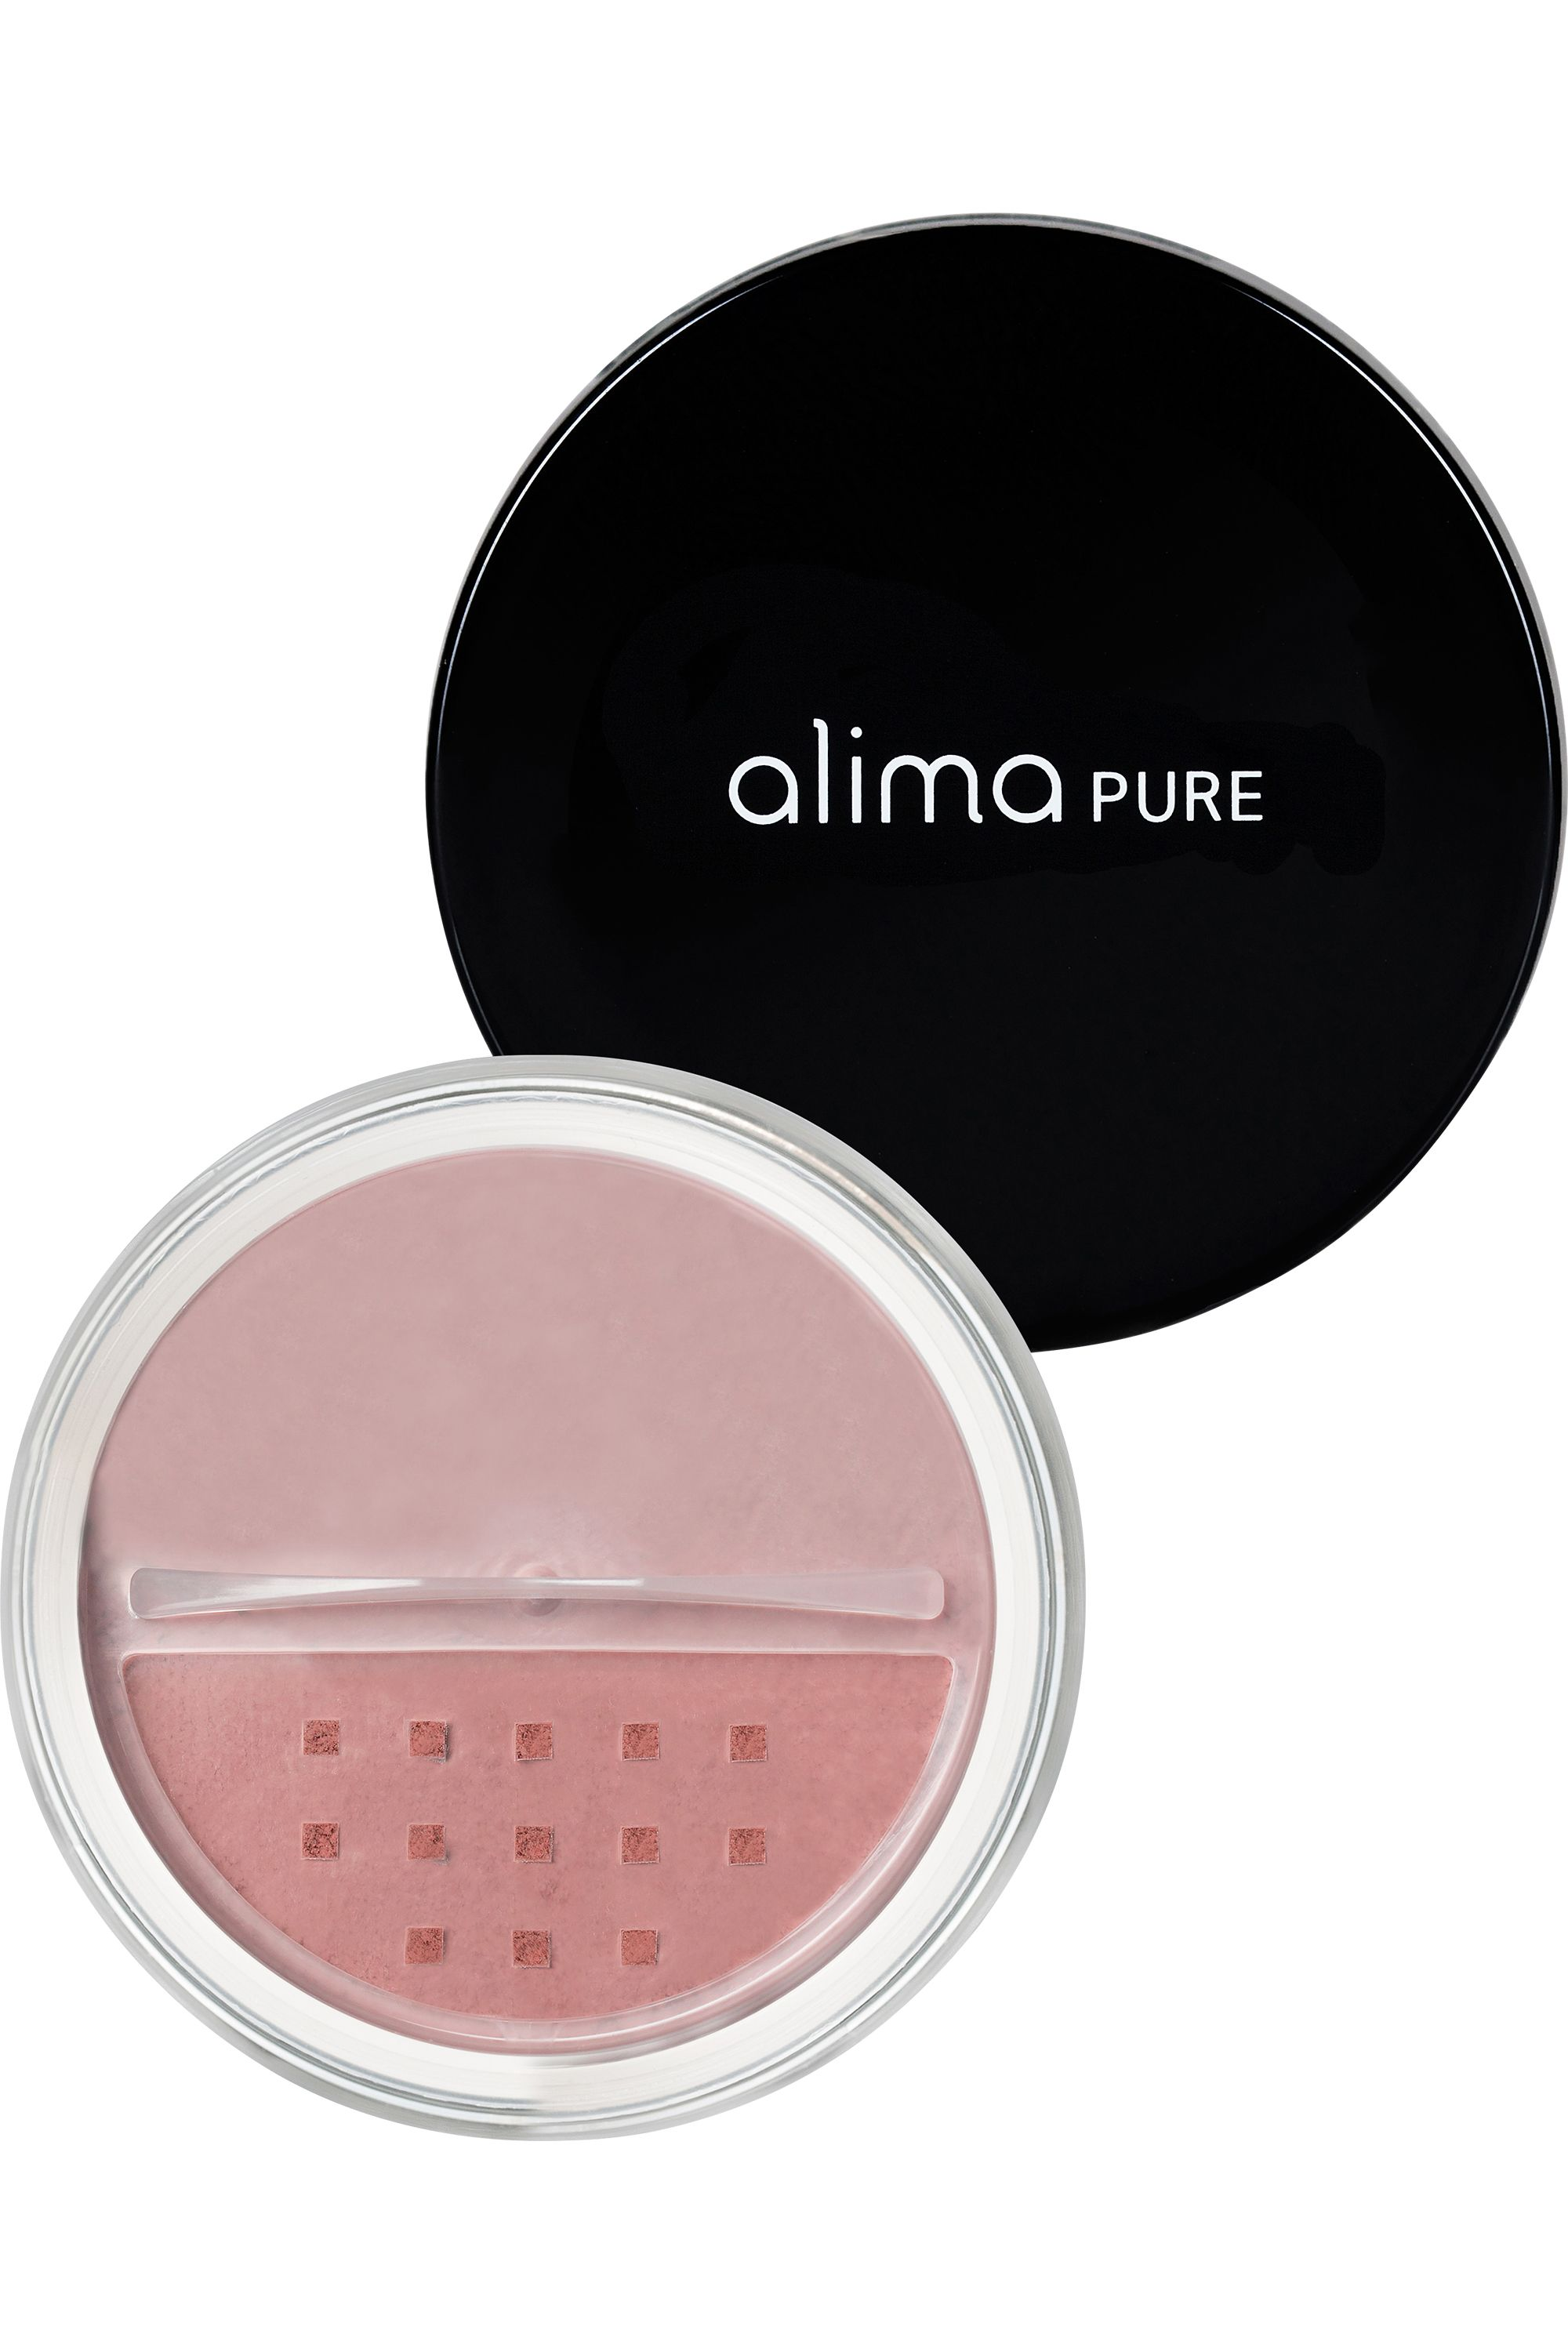 Blissim : Alima Pure - Blush minéral mat - Satin Matte Blush ANTIQUE ROSE